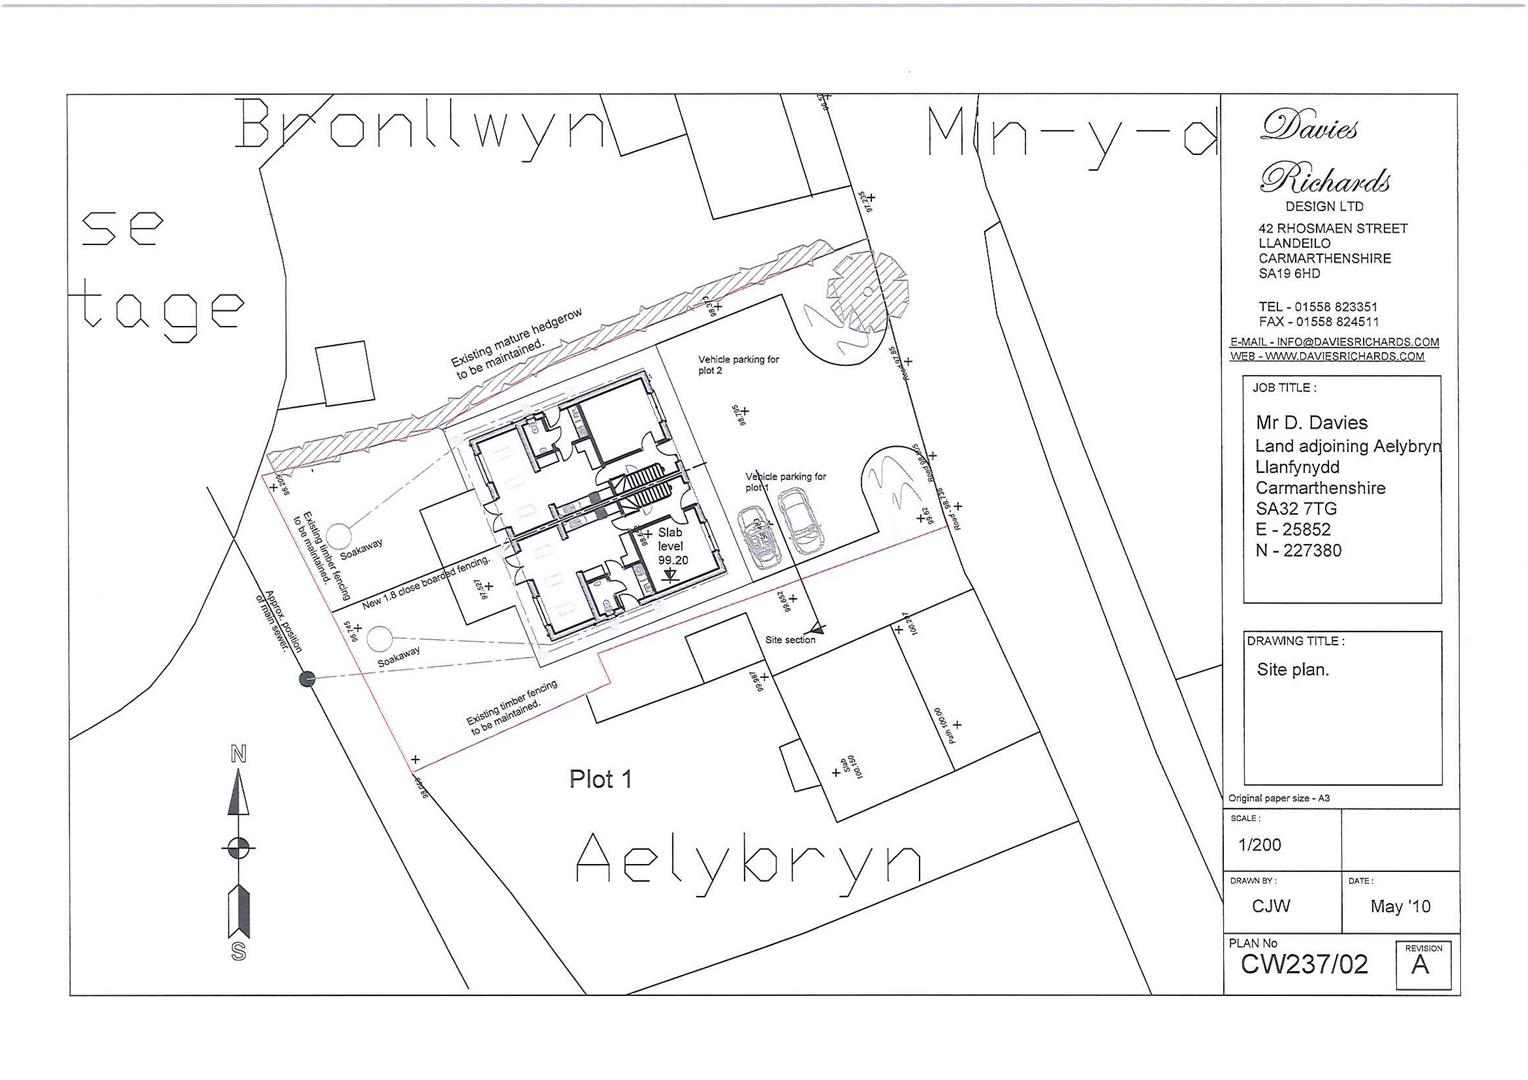 THE LAYOUT PLAN